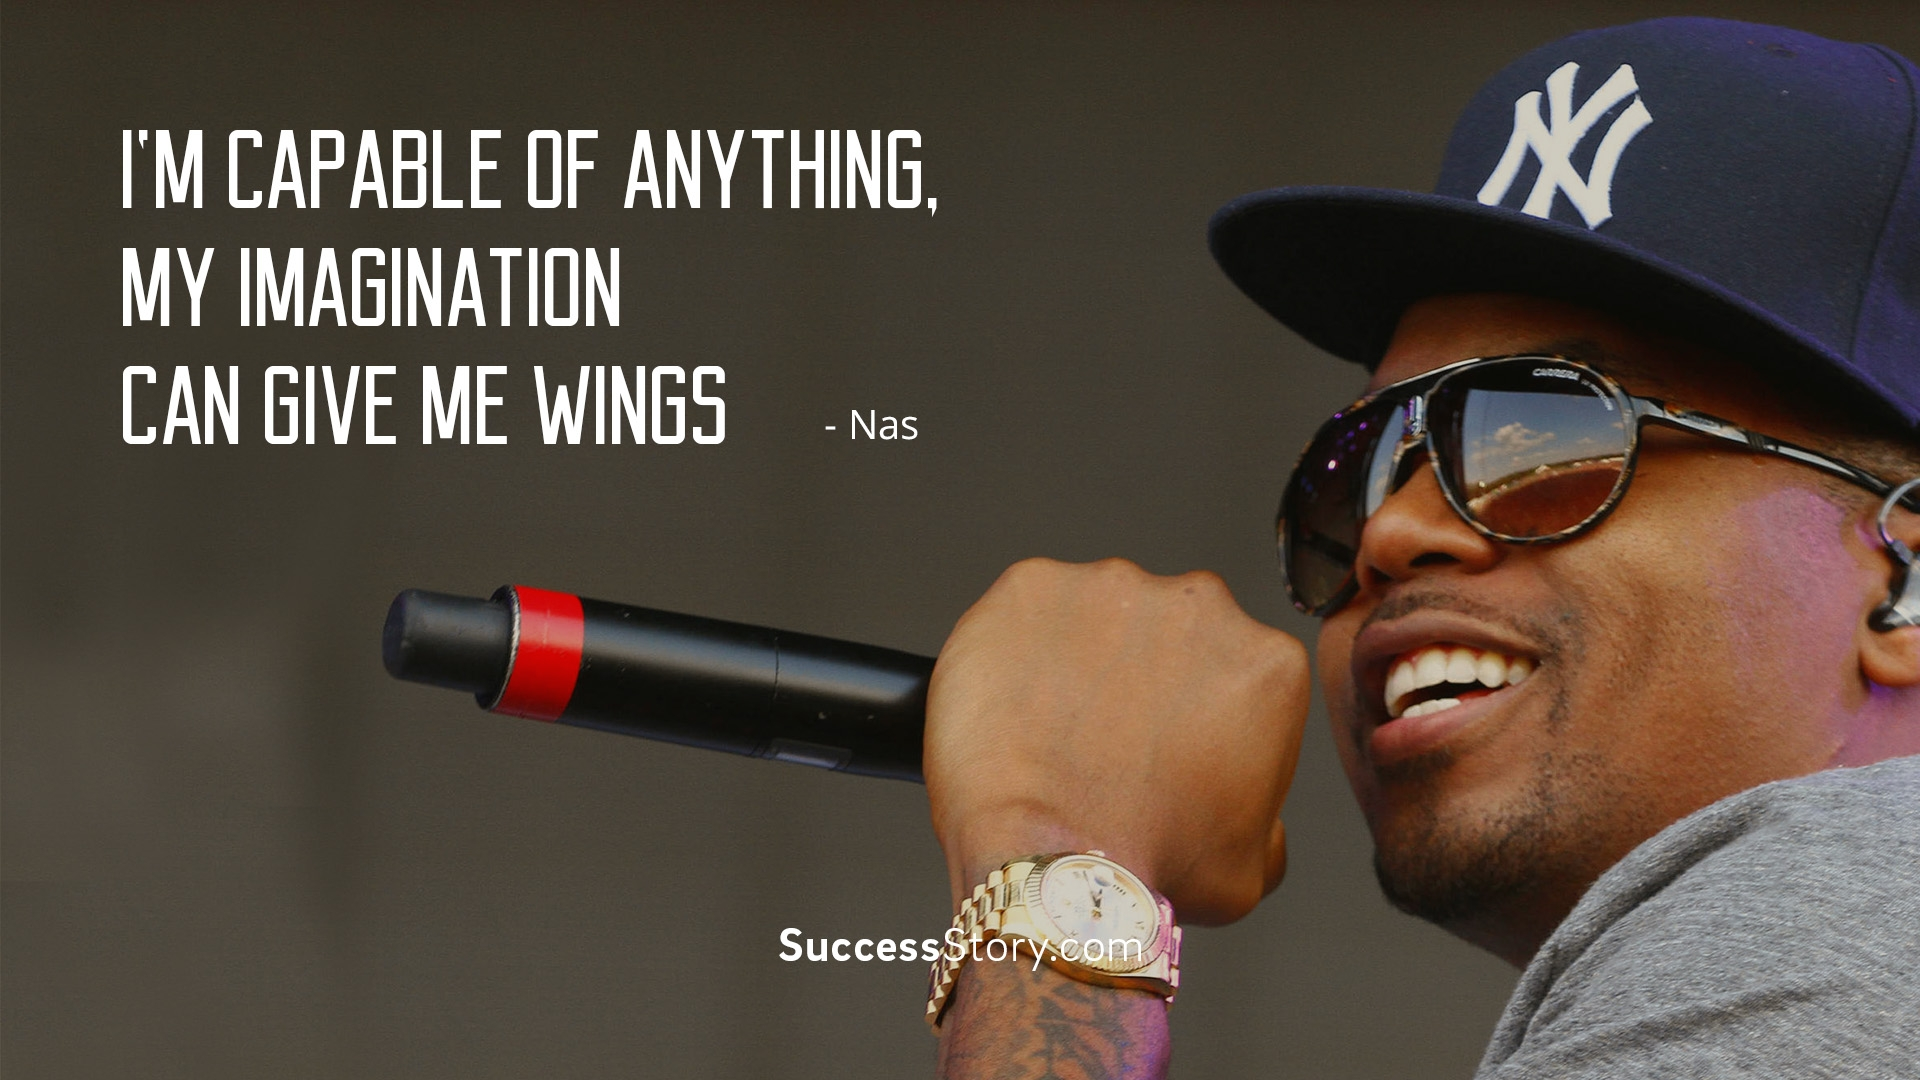 I m capable of anything, my imagination can give me wings